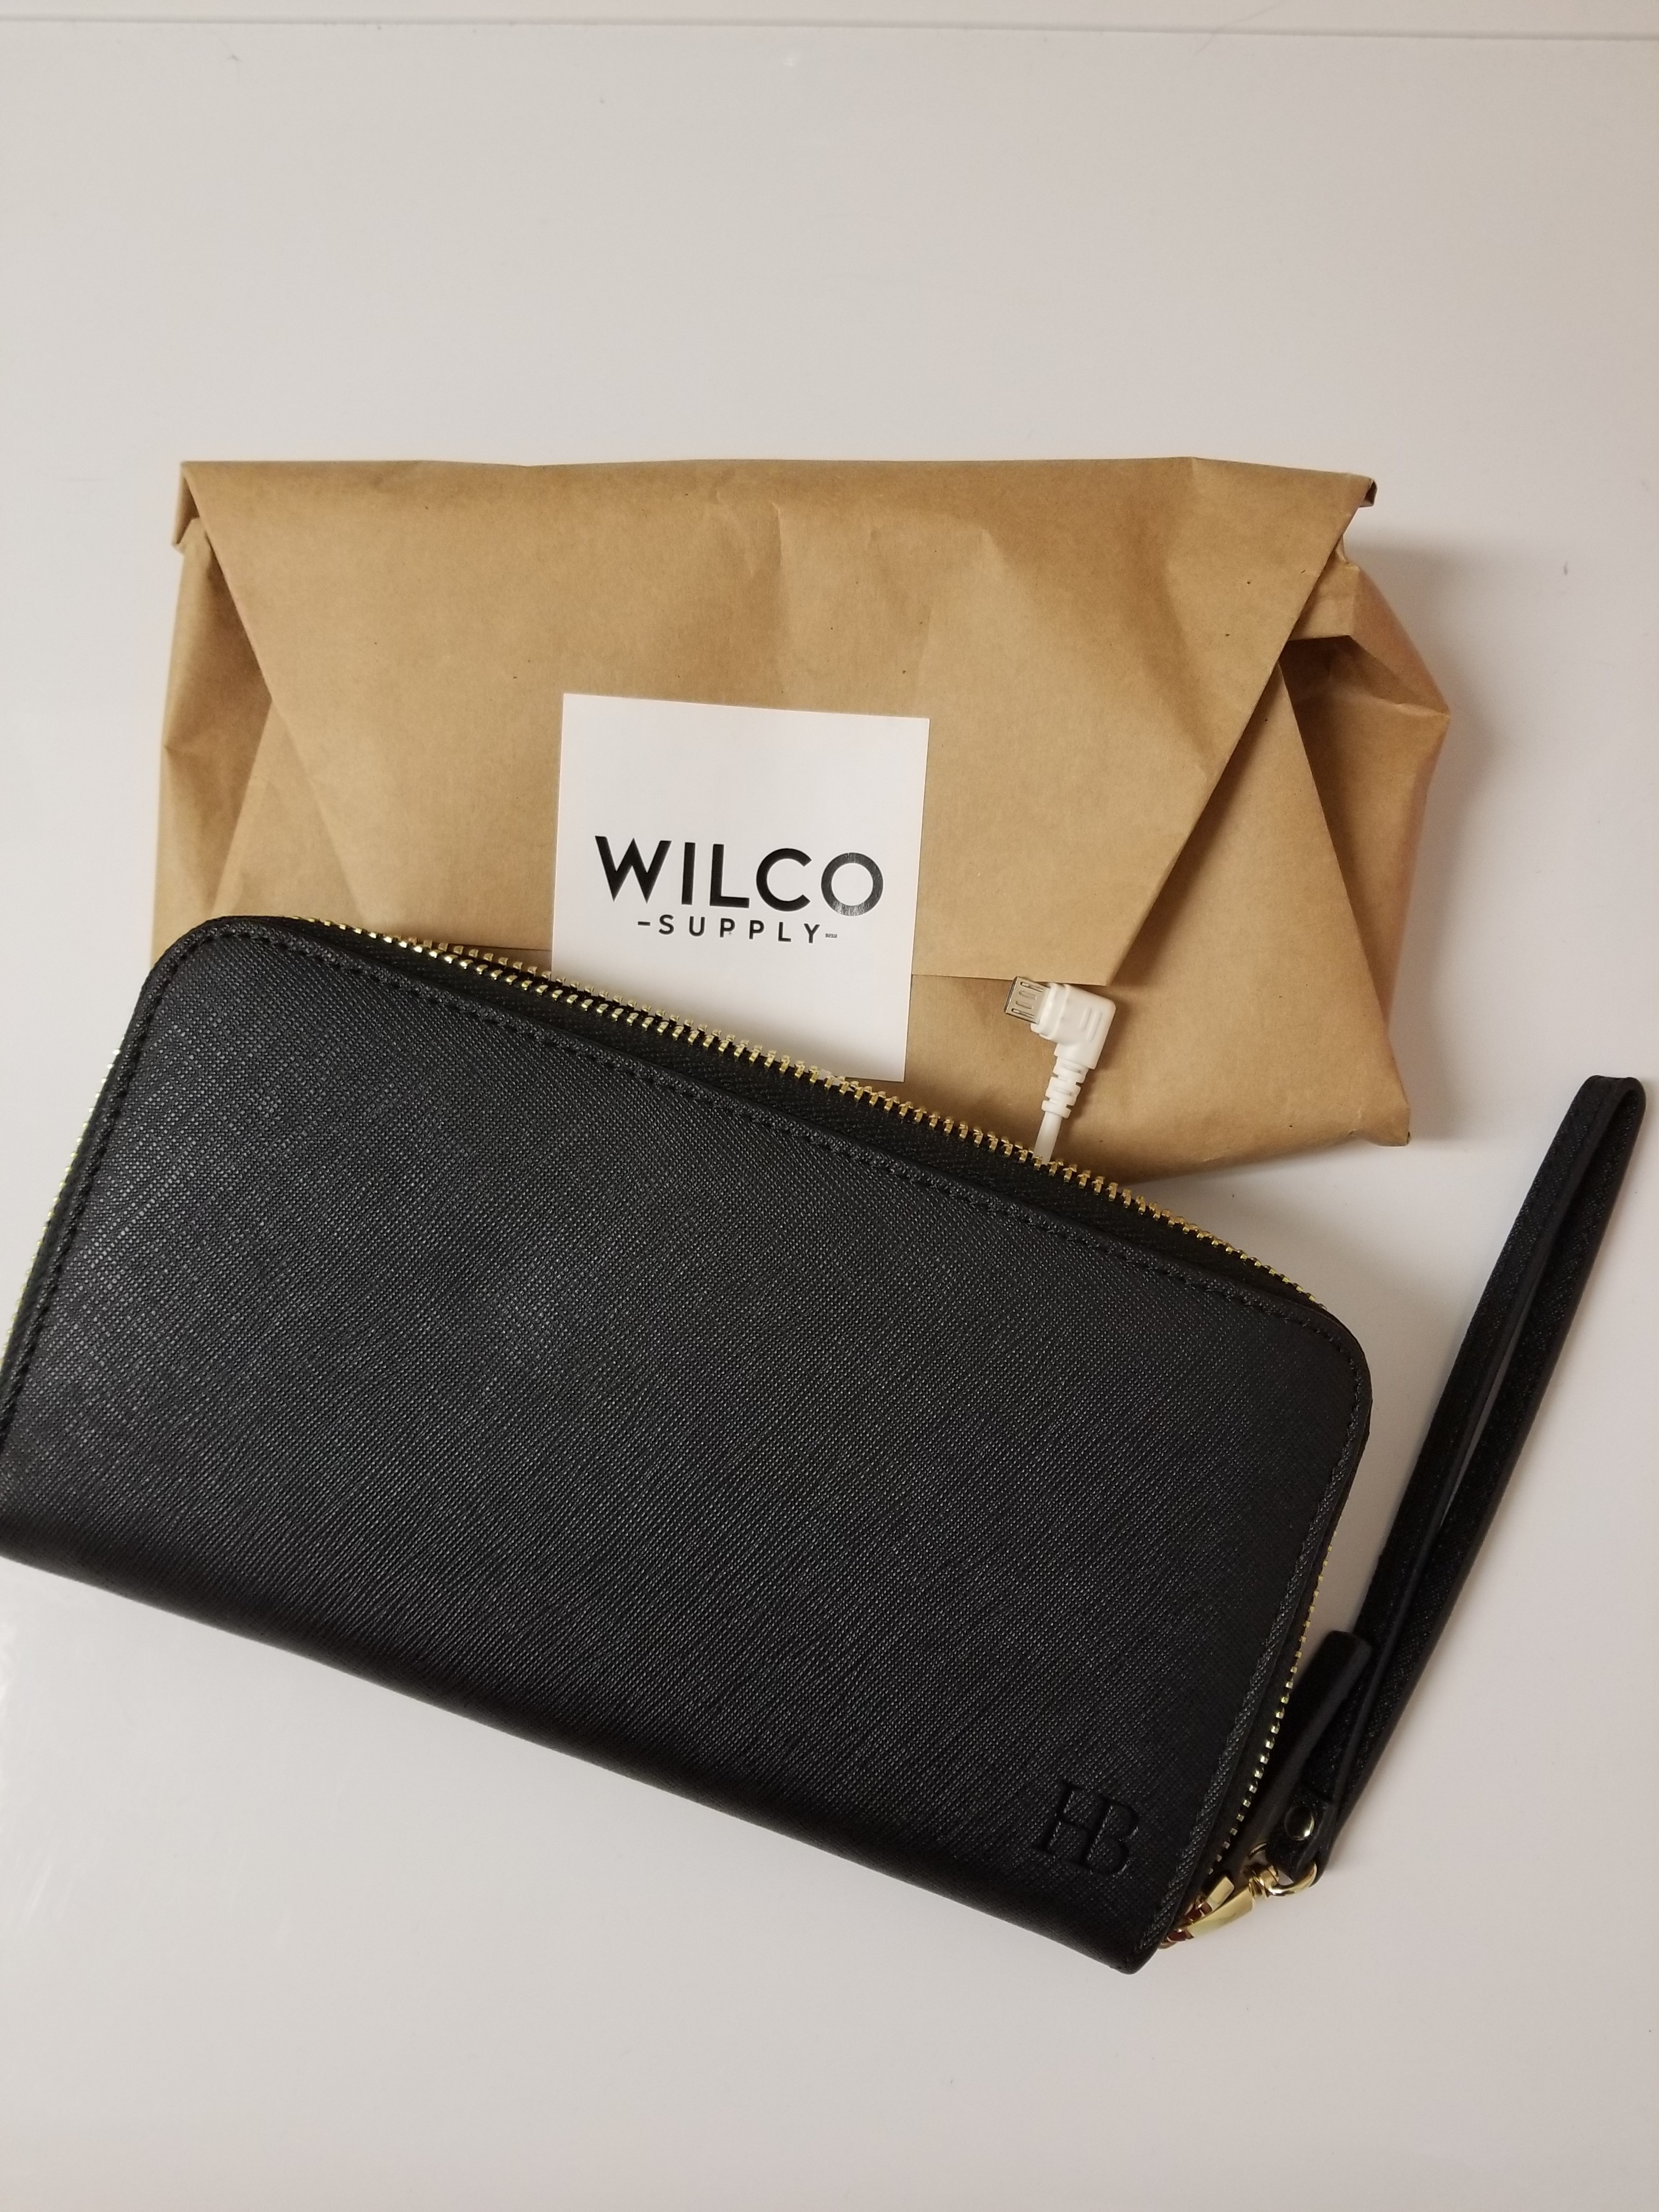 WILCO Mighty Purse charges your phone on the go!